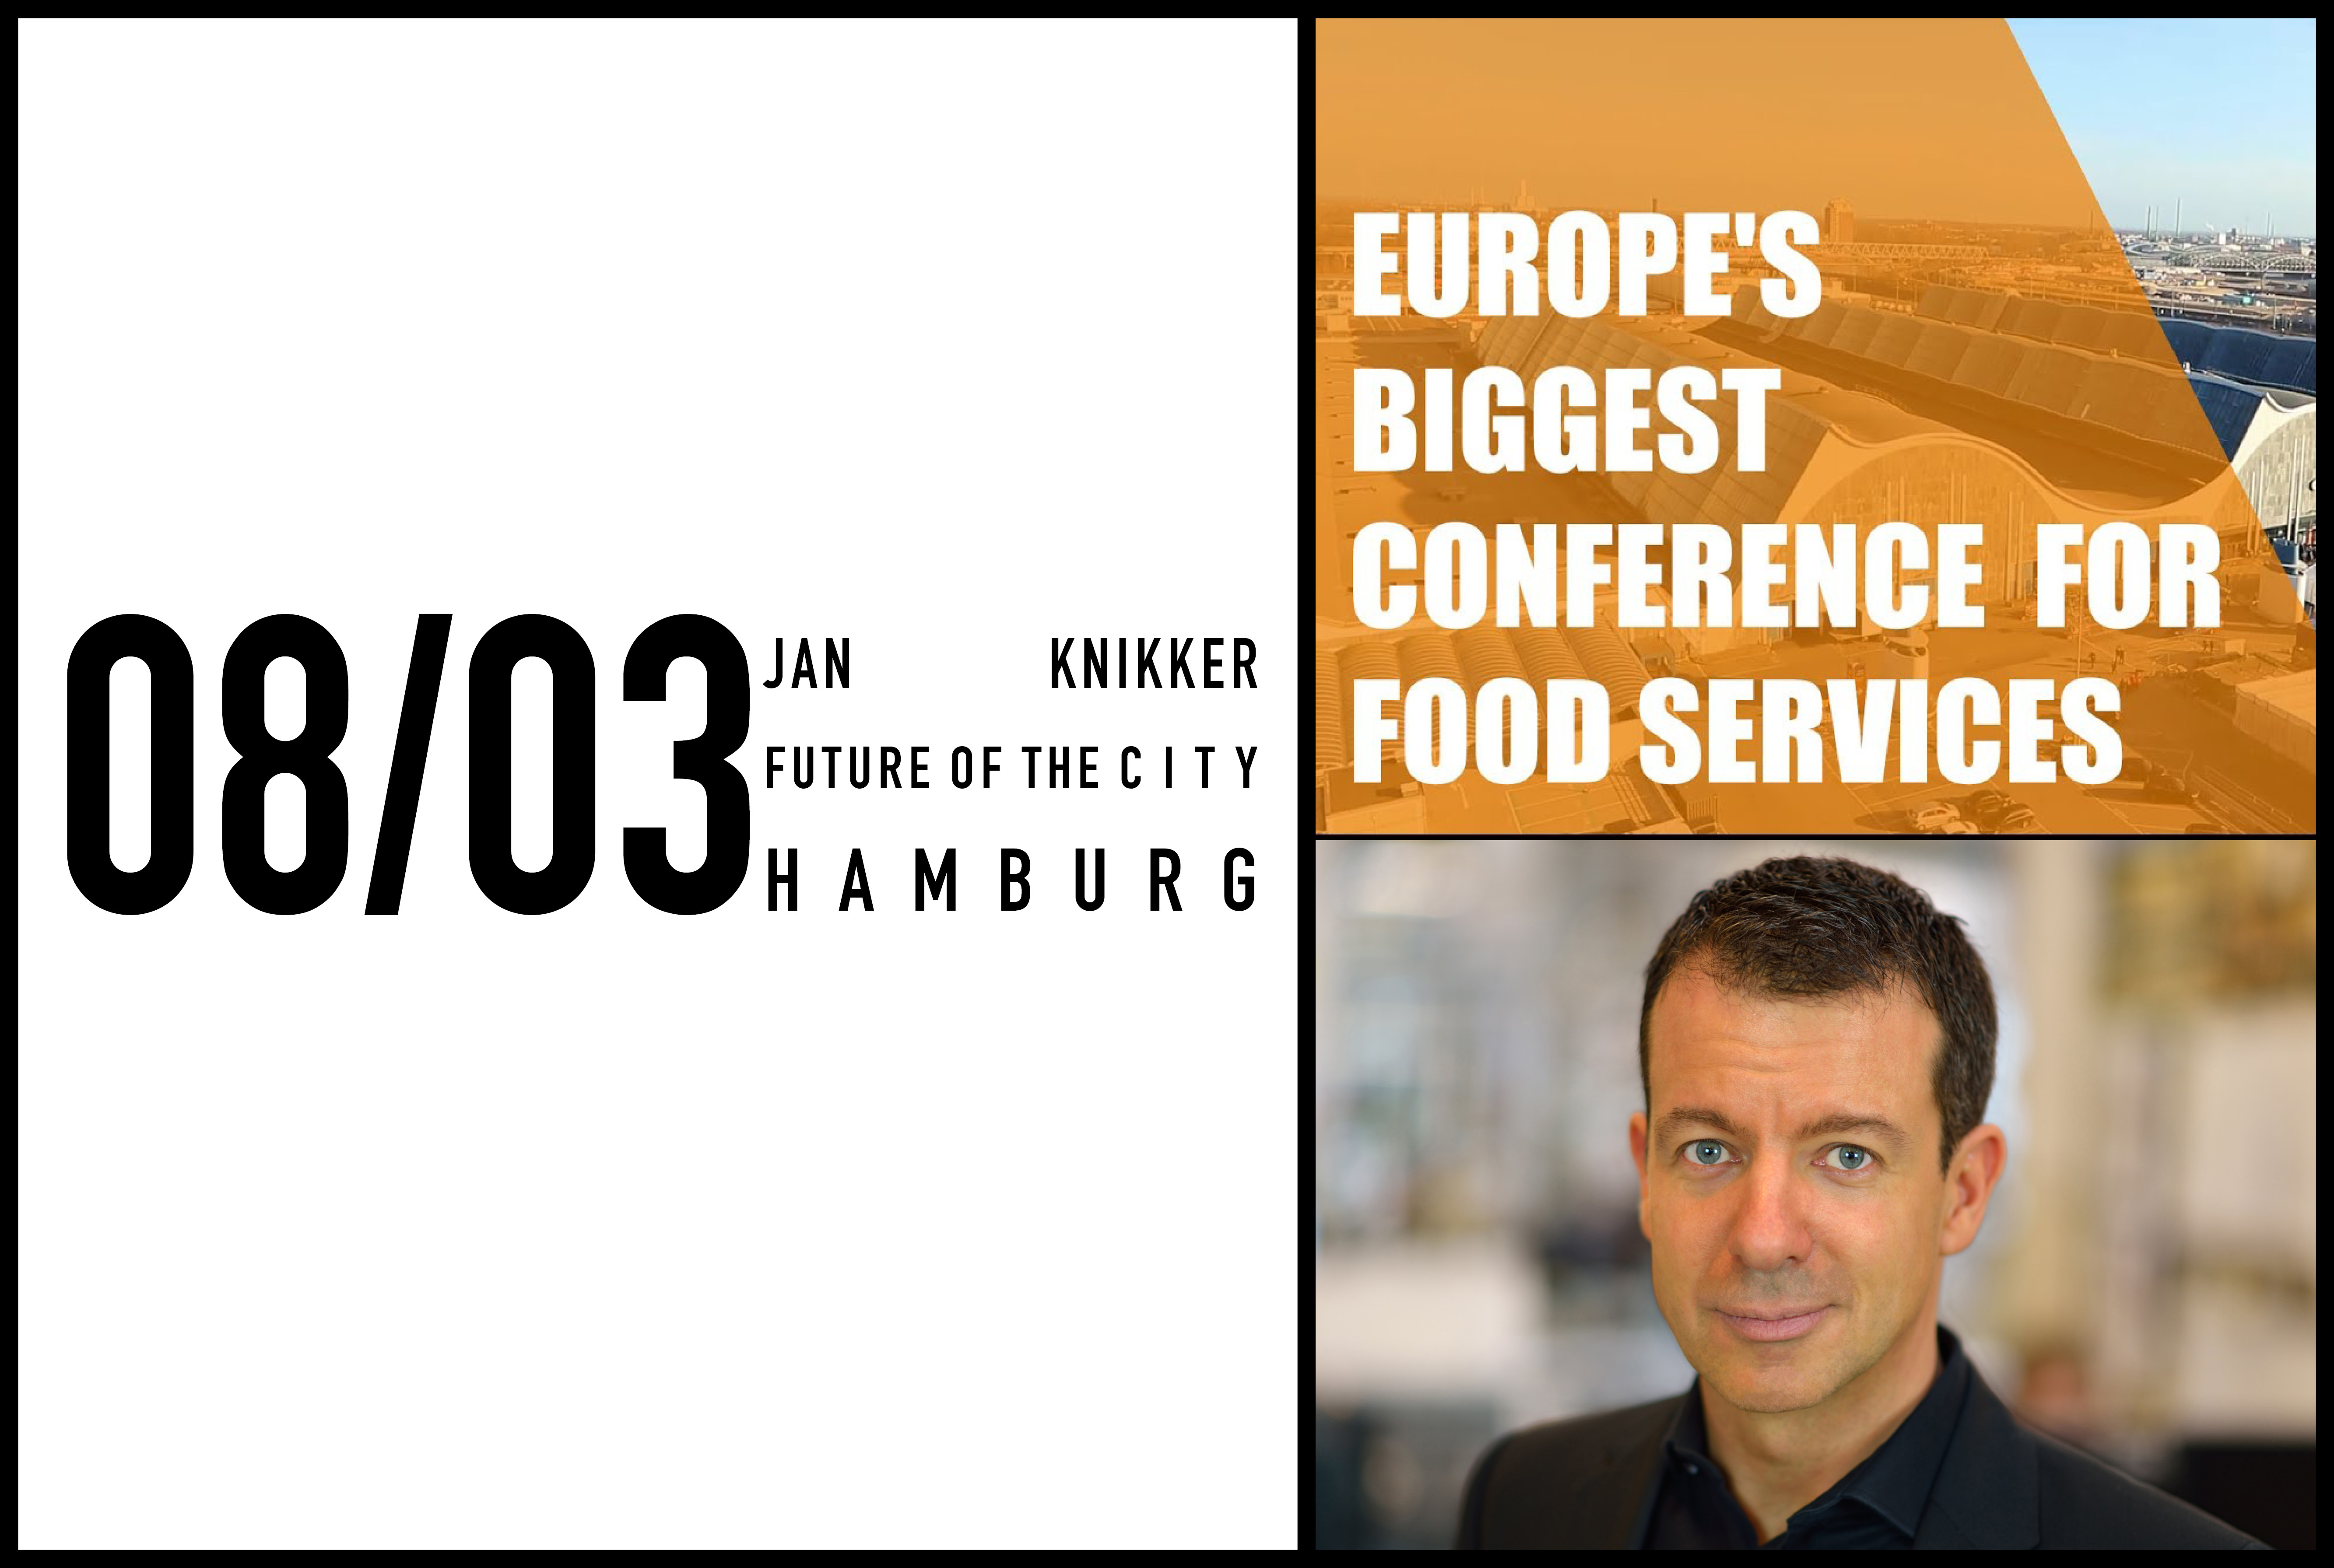 Jan Knikker to speak at International Foodservice Forum 8th of March, 2018